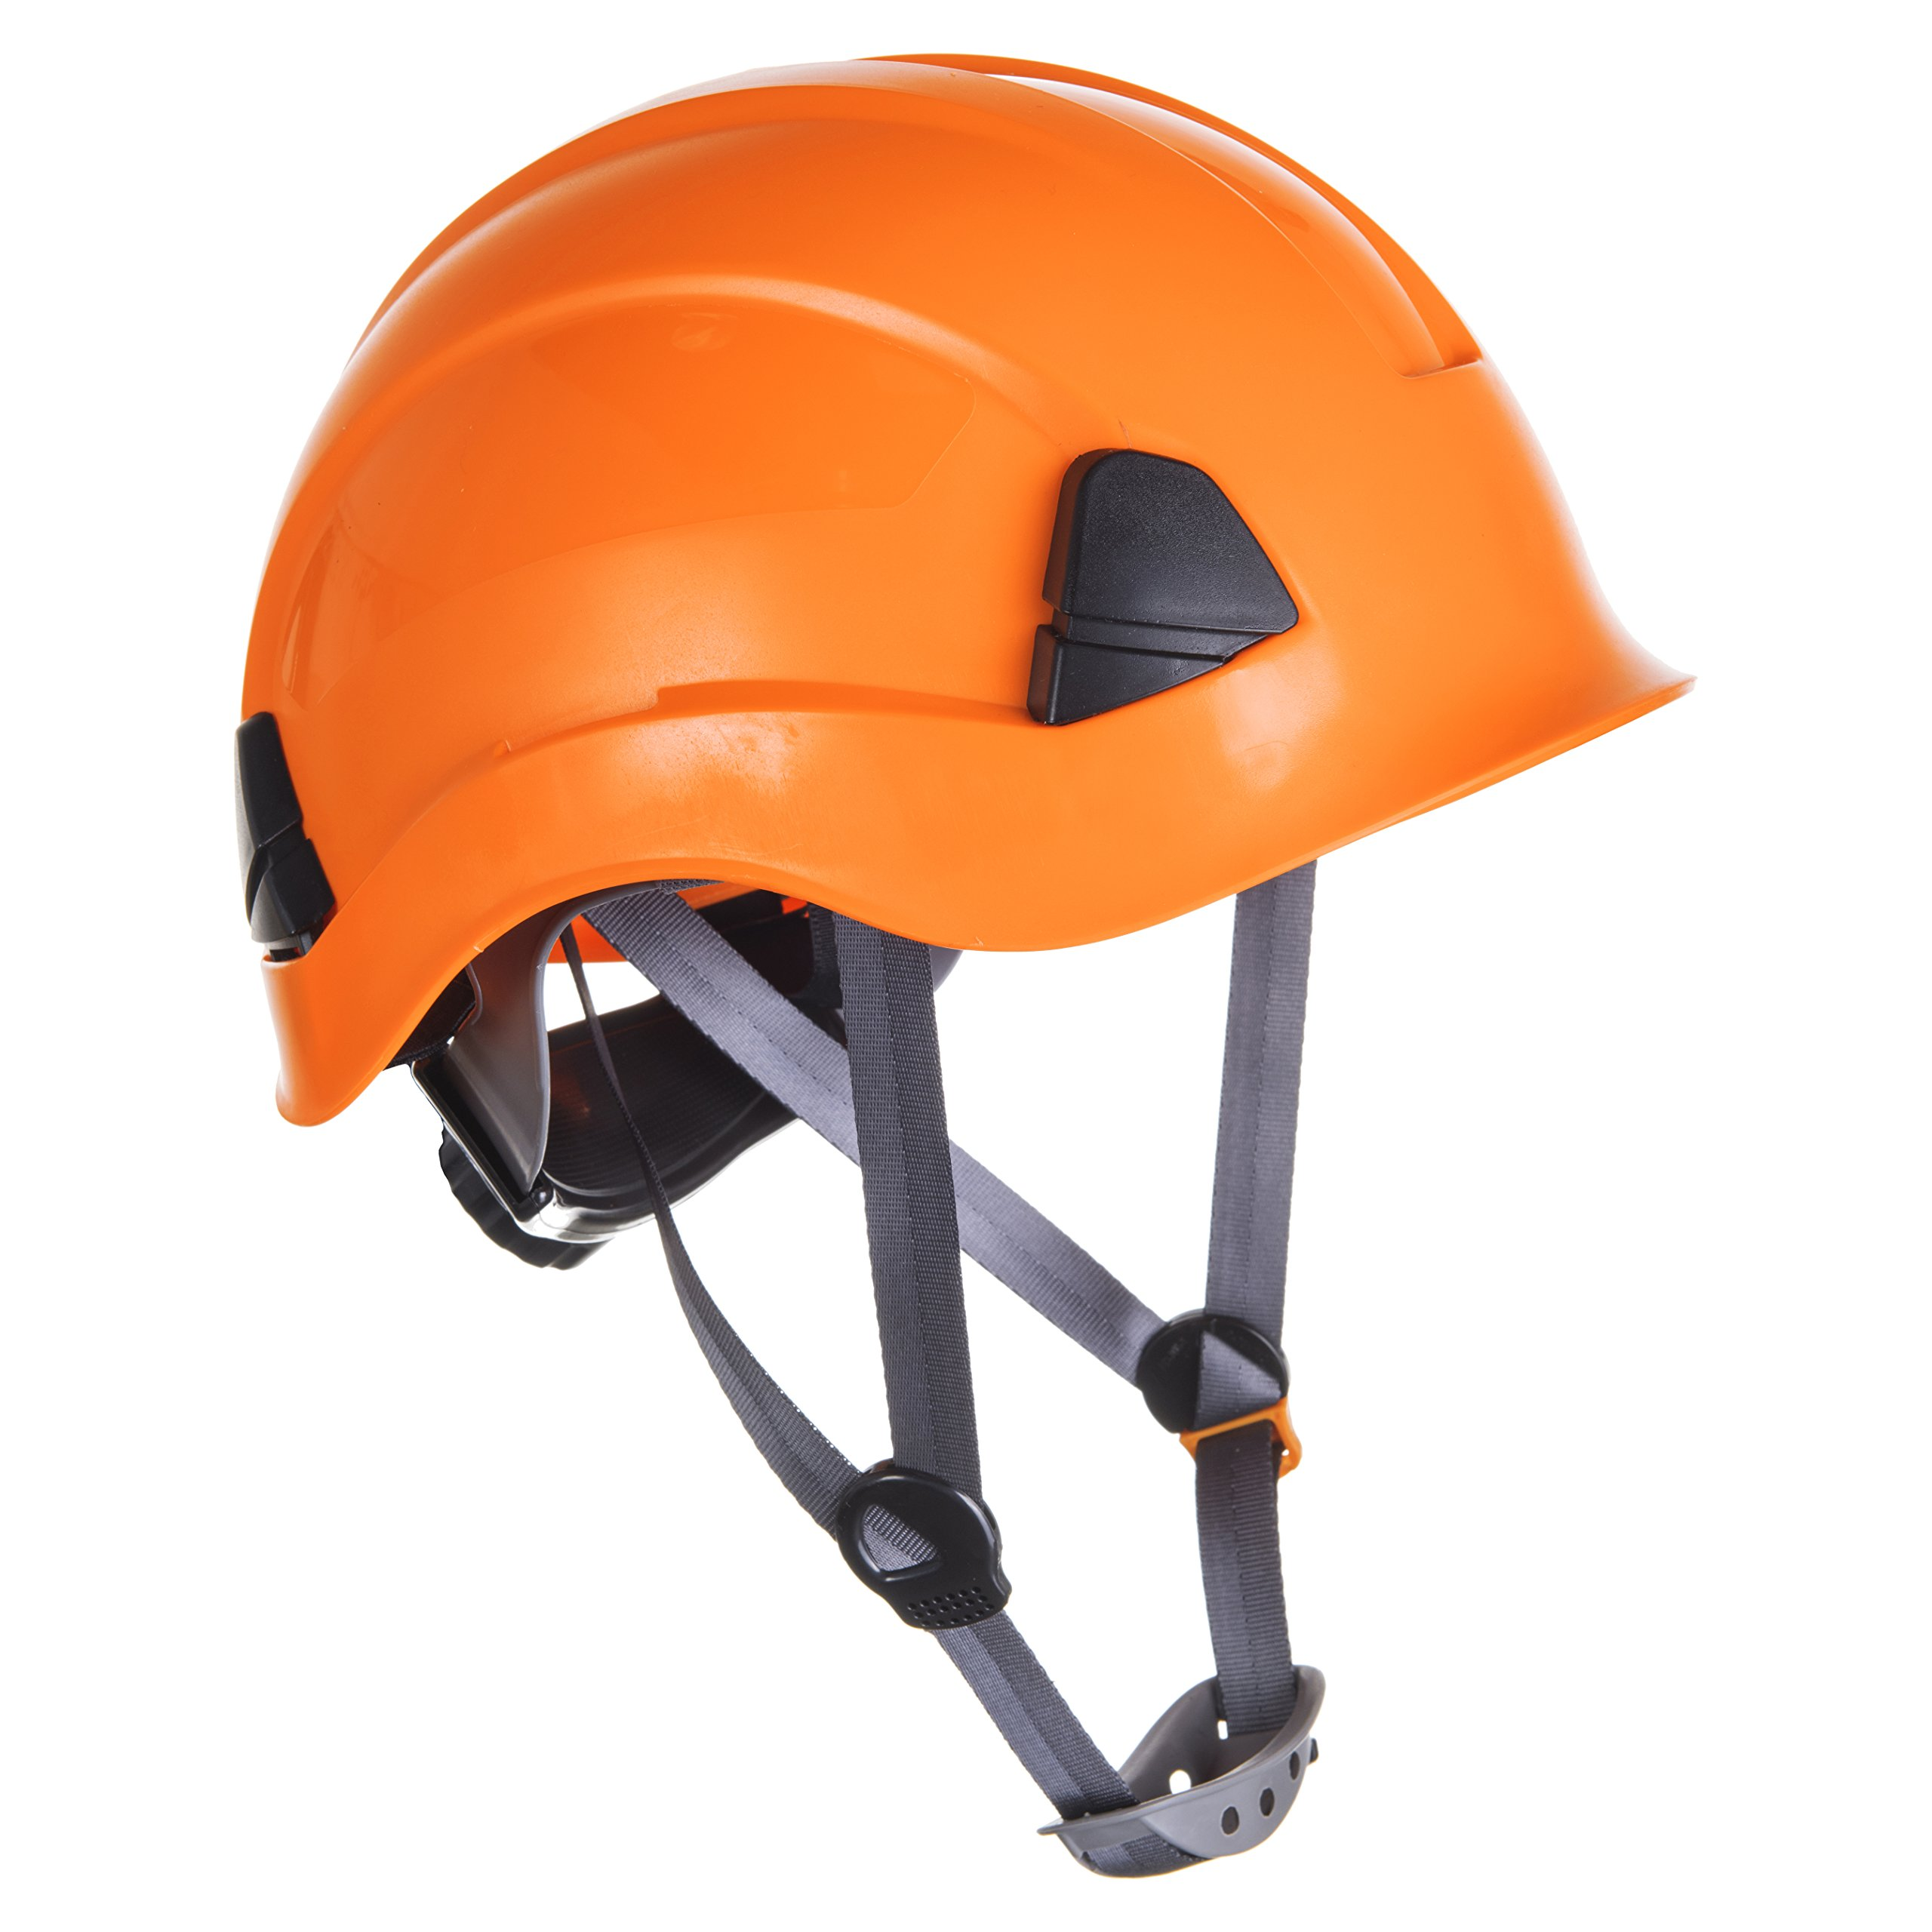 Portwest PS53 – PW Altura Resistencia del casco